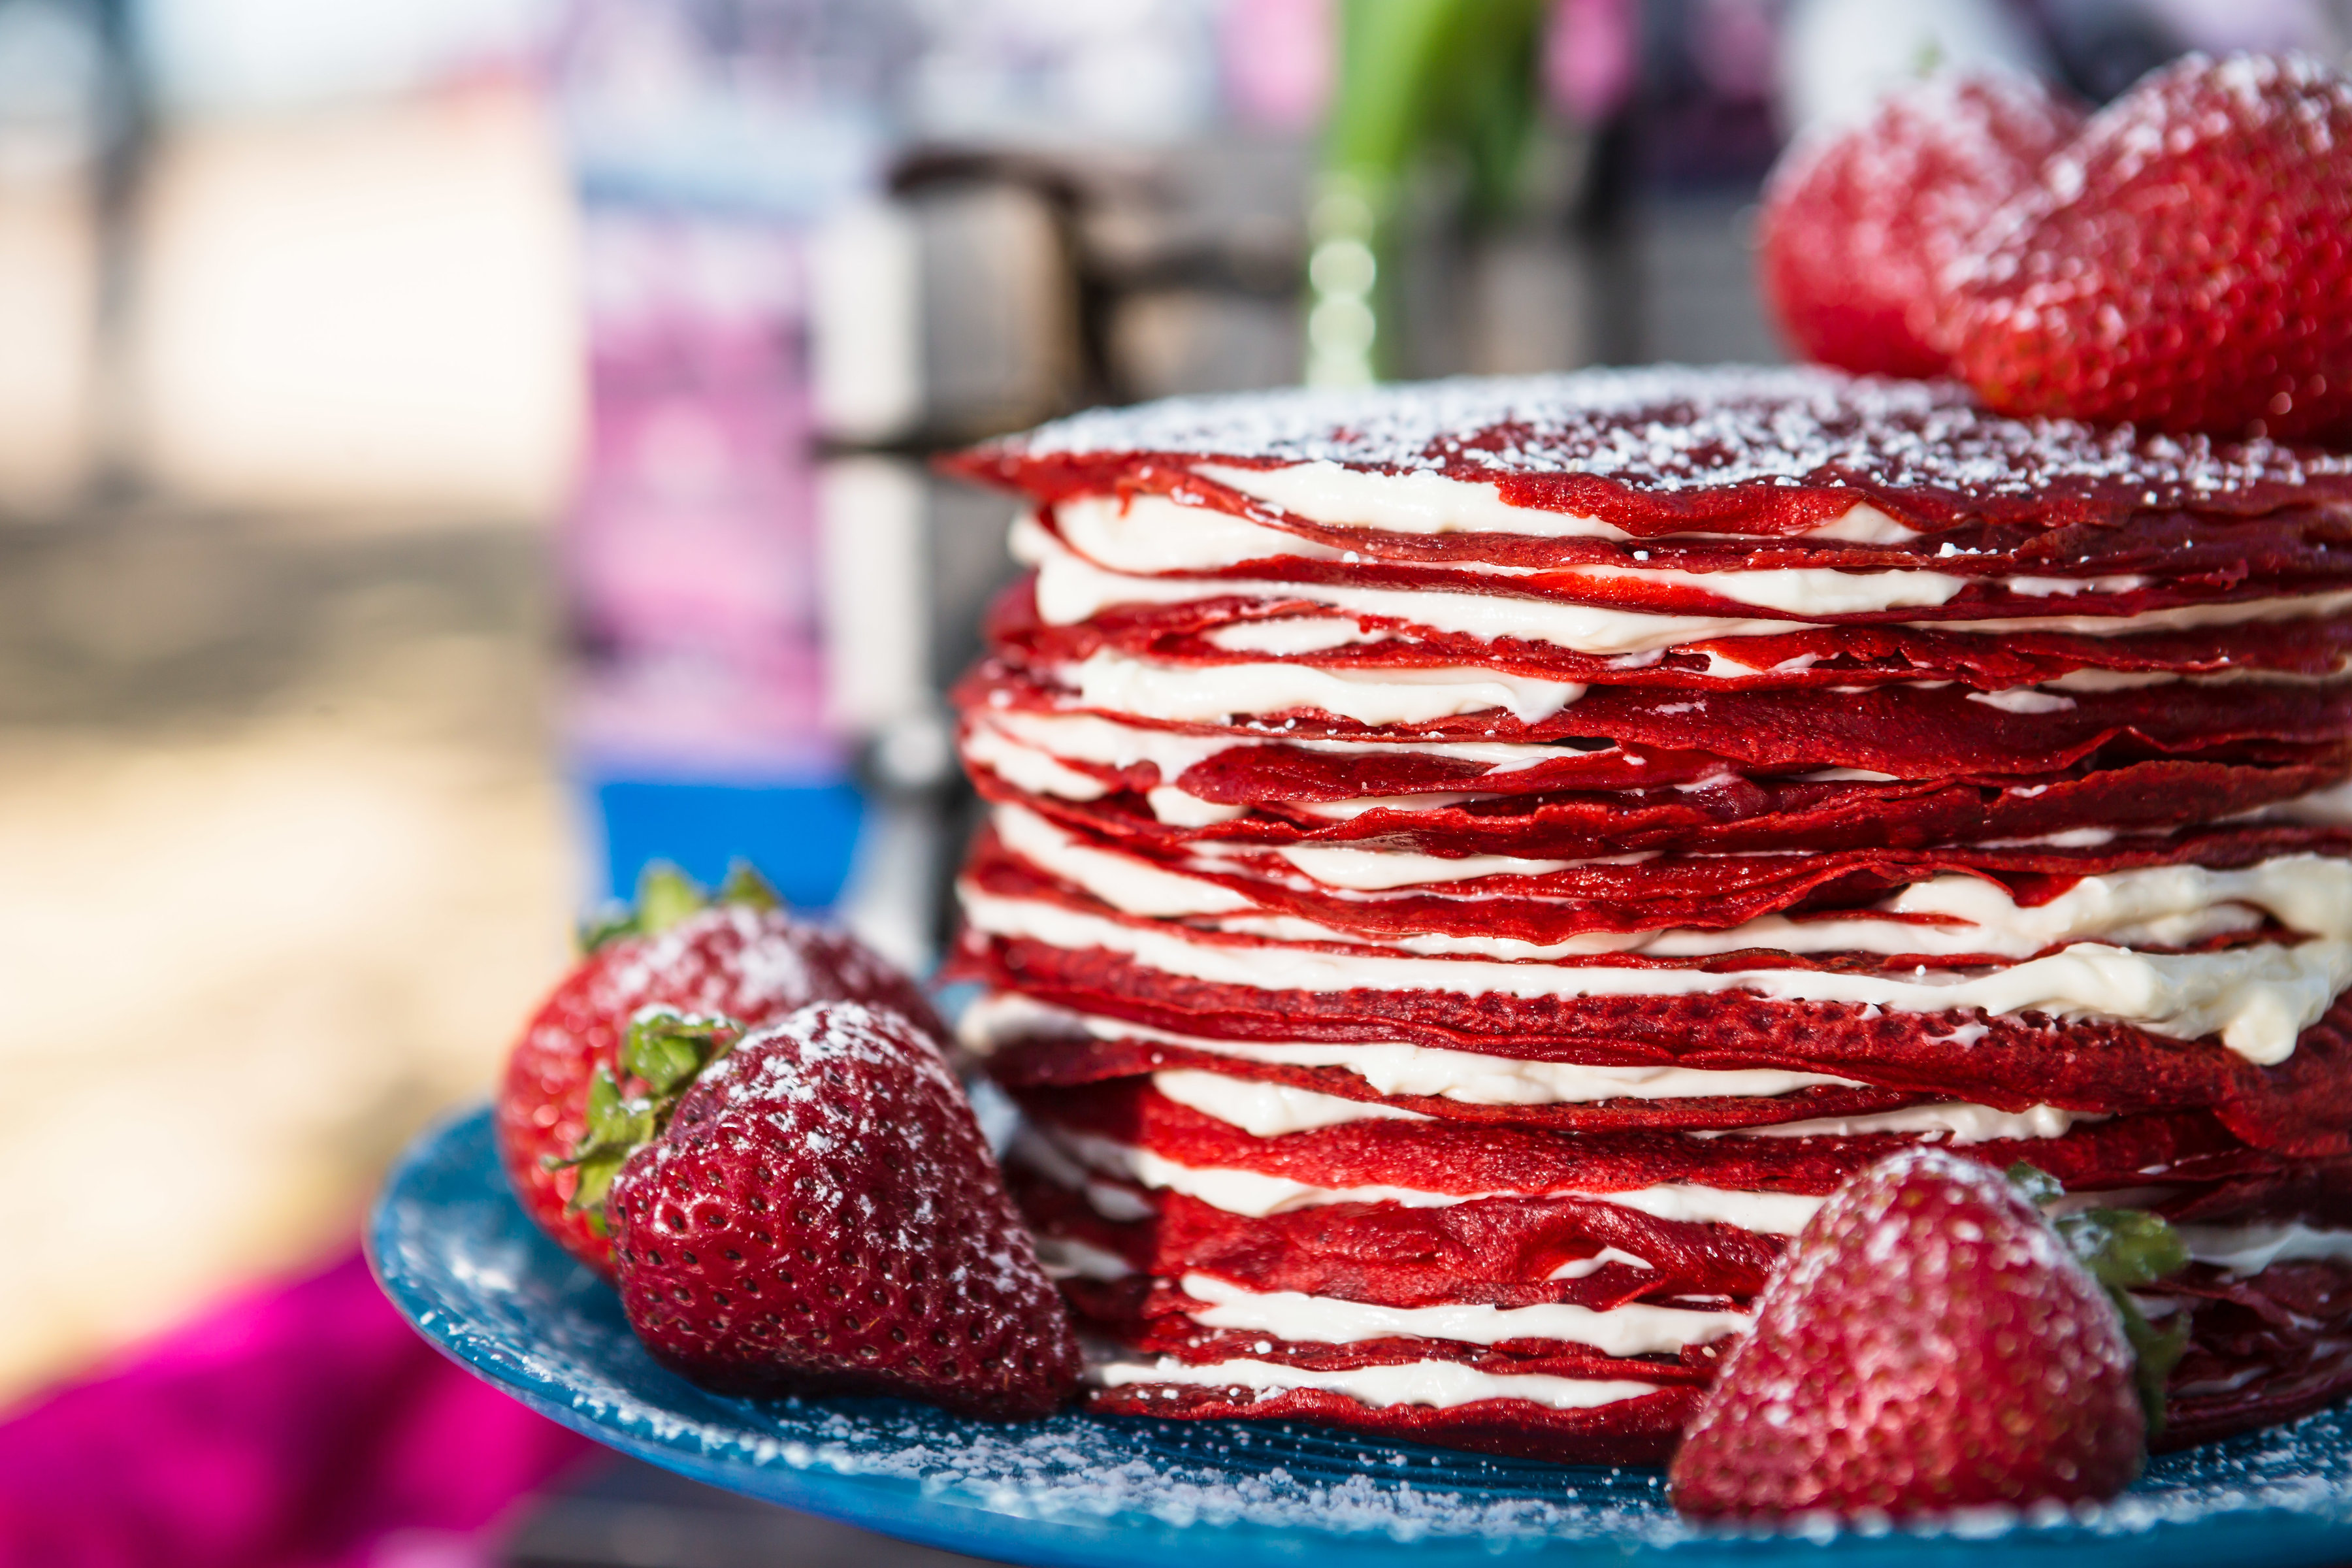 Red Velvet Crepe Cake for Brunch Wed